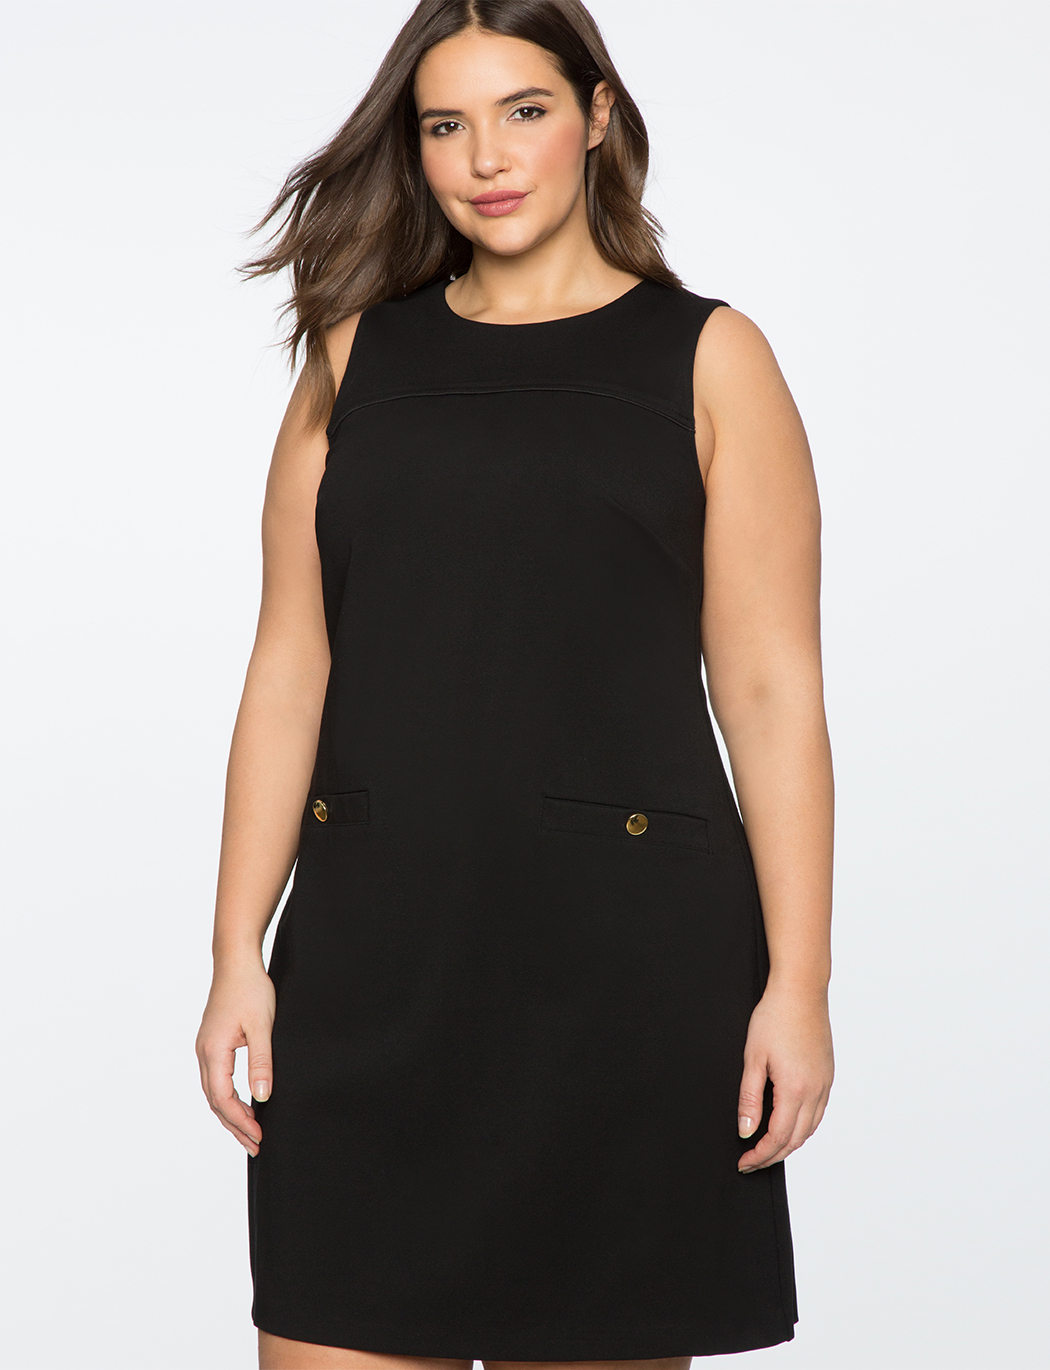 27efb6777f190 9-to-5 Sleeveless Stretch Work Dress | Women's Plus Size Dresses | ELOQUII